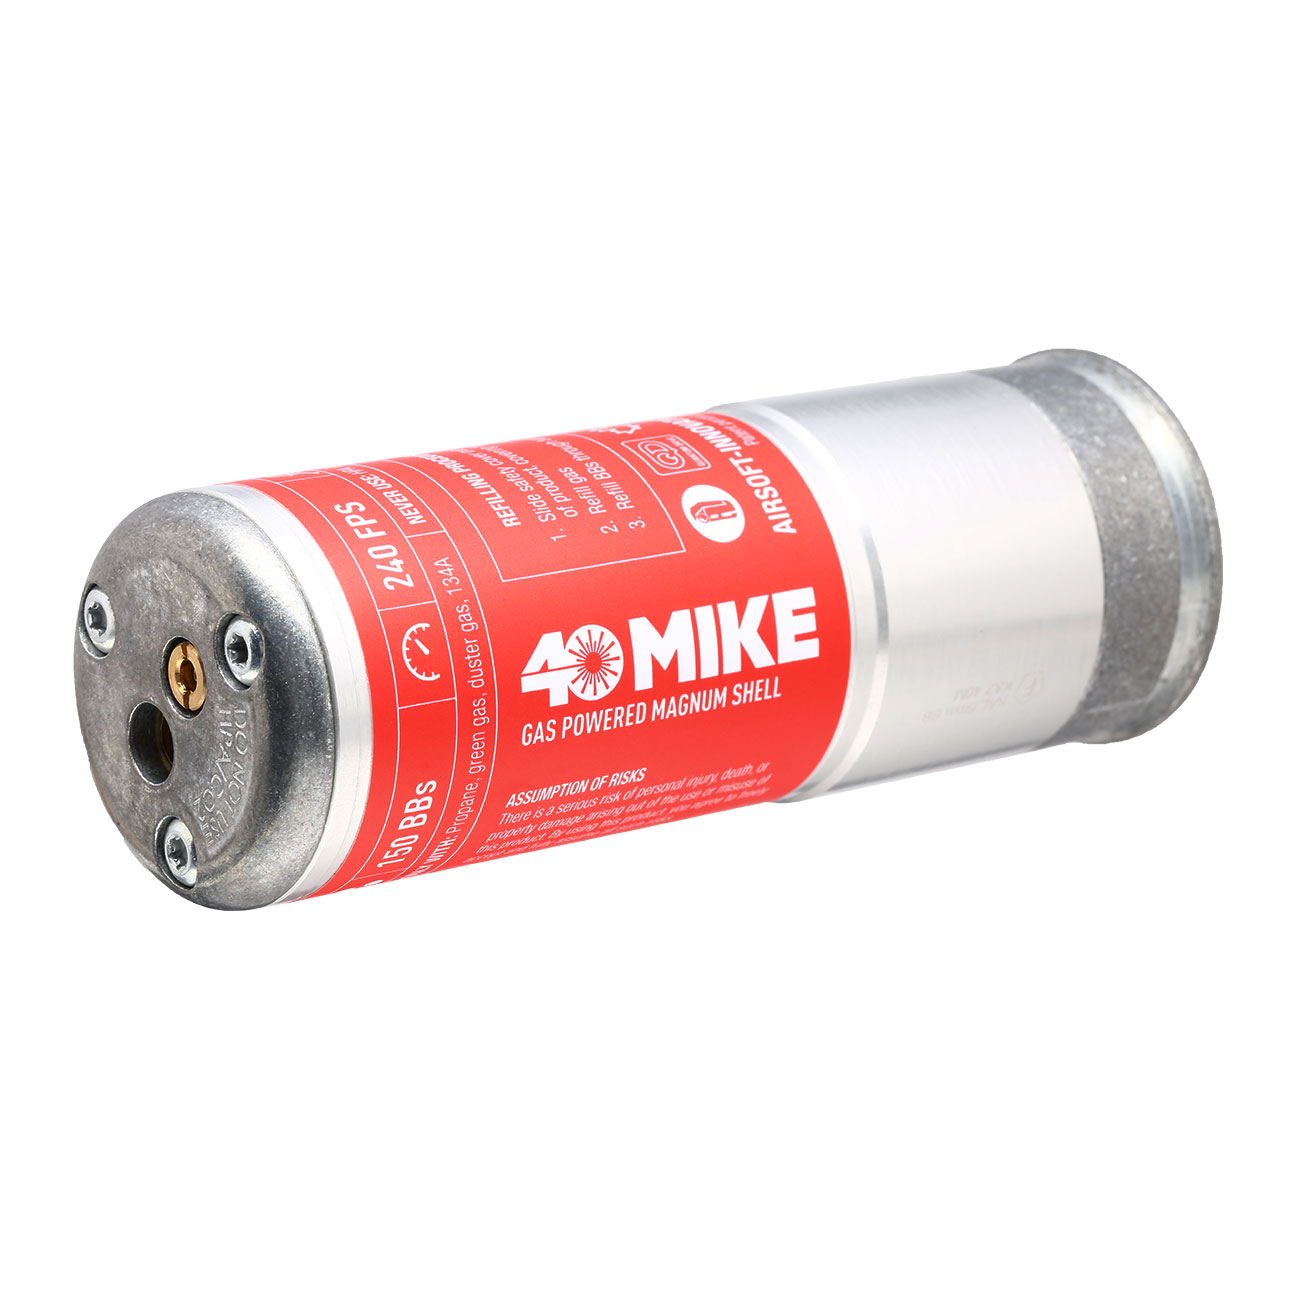 Airsoft Innovations 40 Mike 40mm Vollmetall Hülse / Einlegepatrone f. 150 6mm BBs rot / silber 0